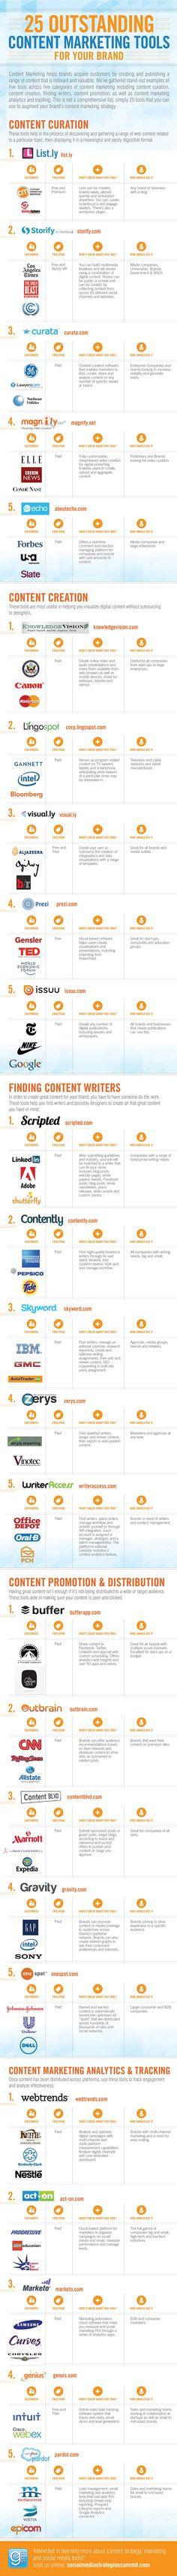 infographic, 25 content marketing tools you need to succeed.